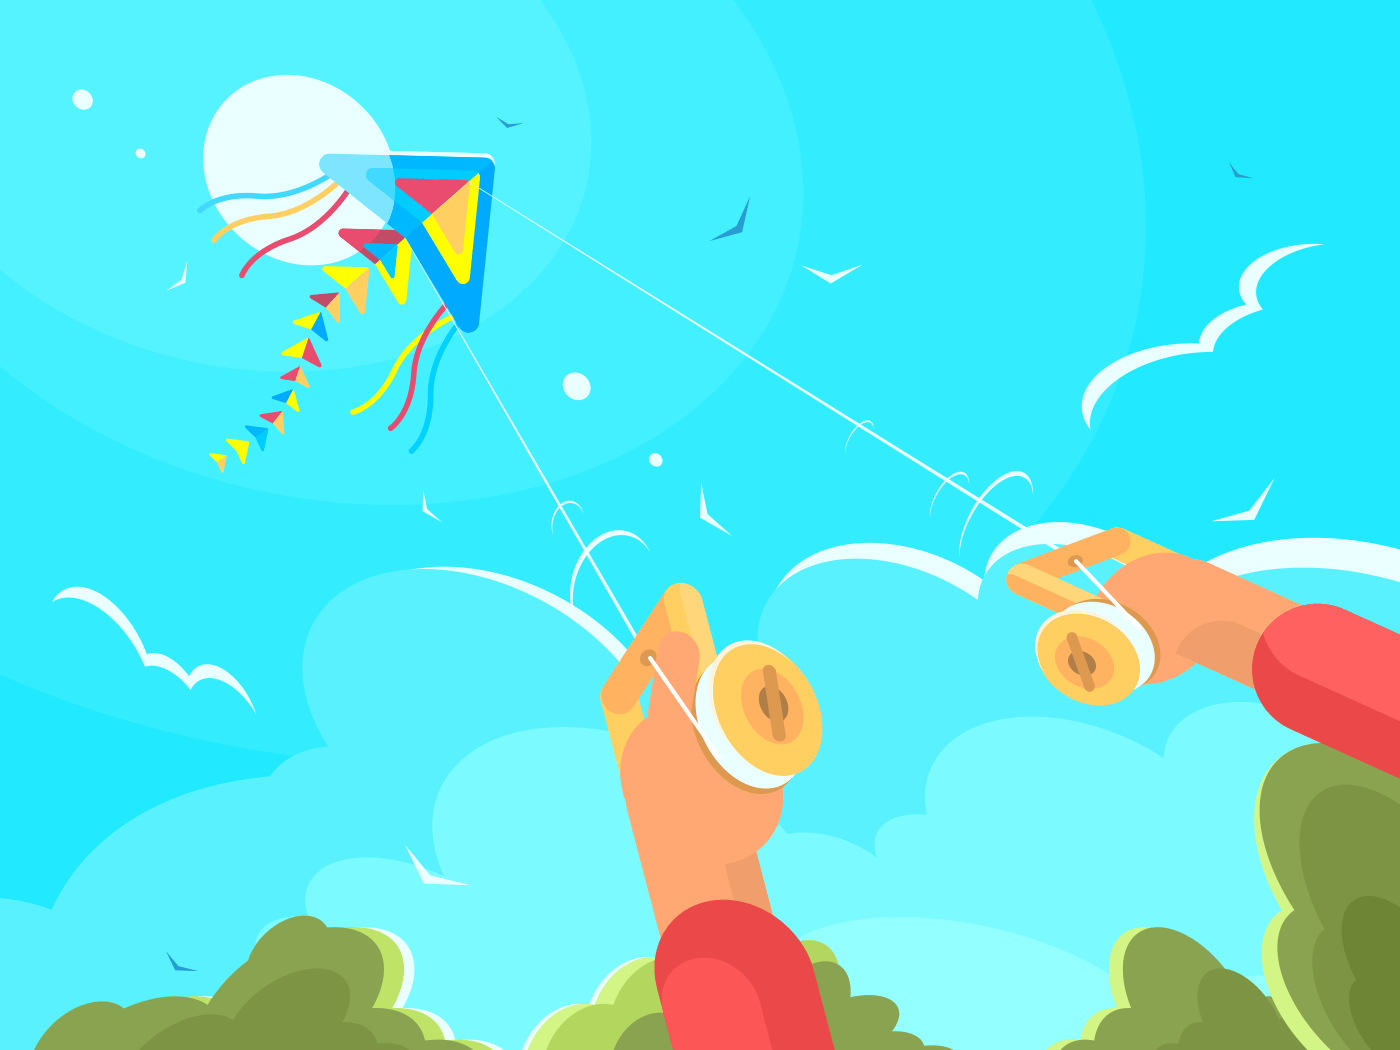 Man playing with kite launching in sky. Vector flat illustration